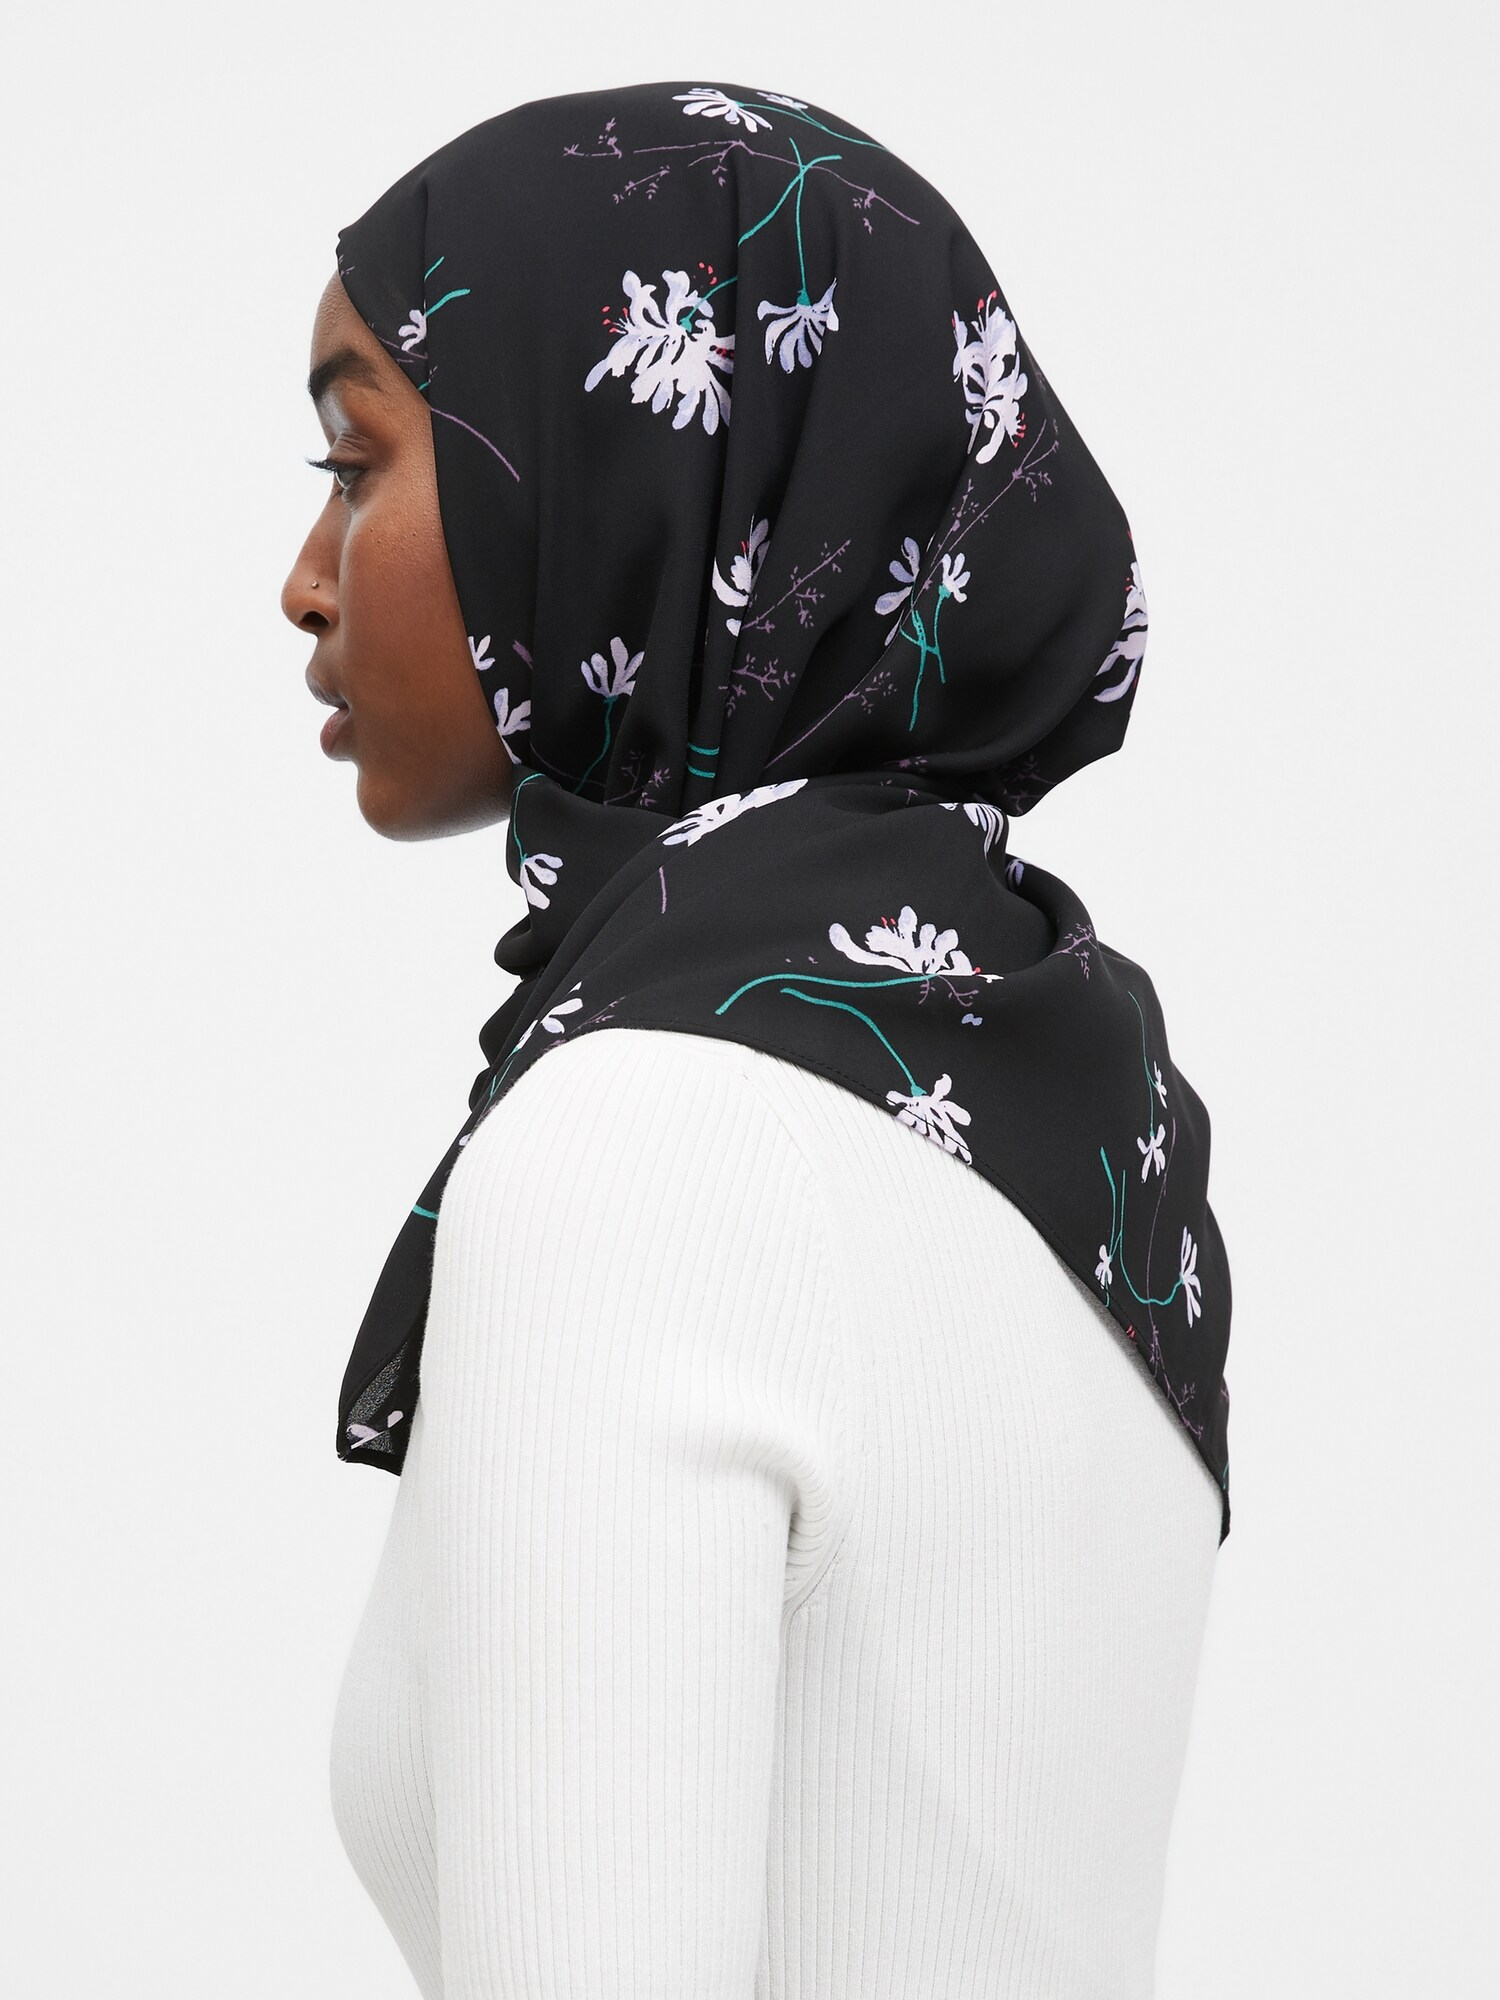 Banana republic hijabs